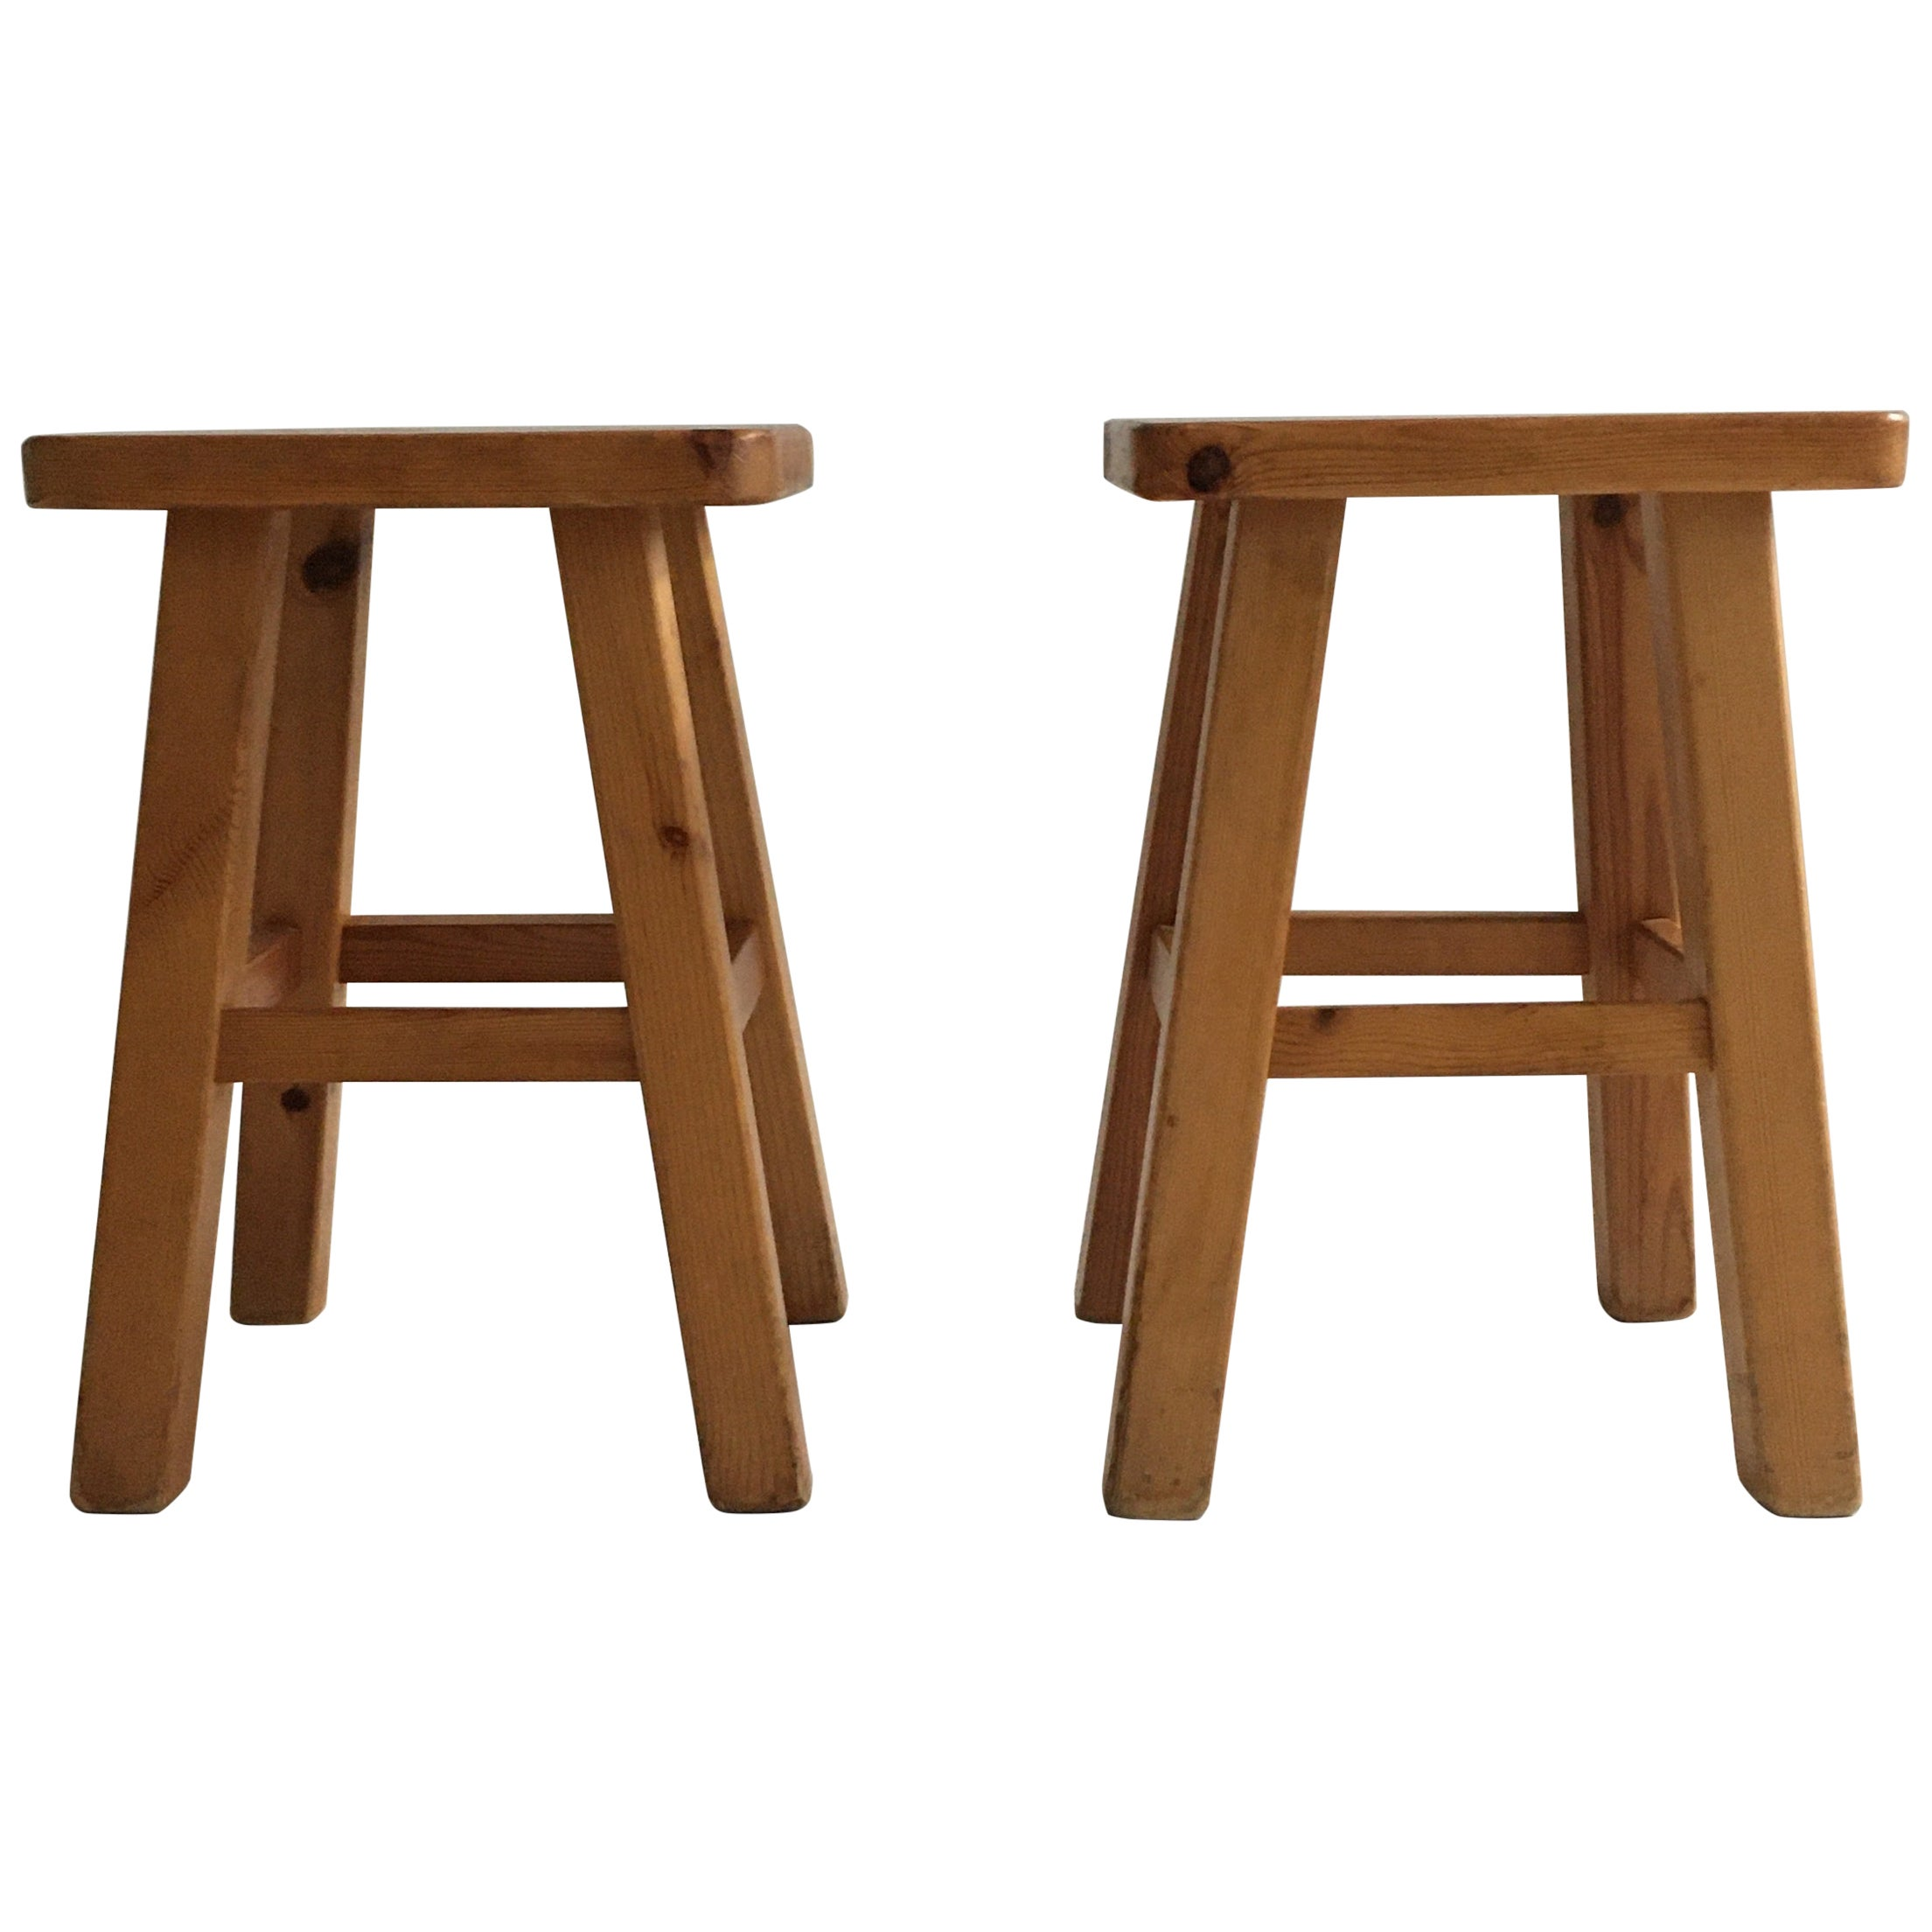 Charlotte Perriand Pair of Square Pine Stools, France, 1960s